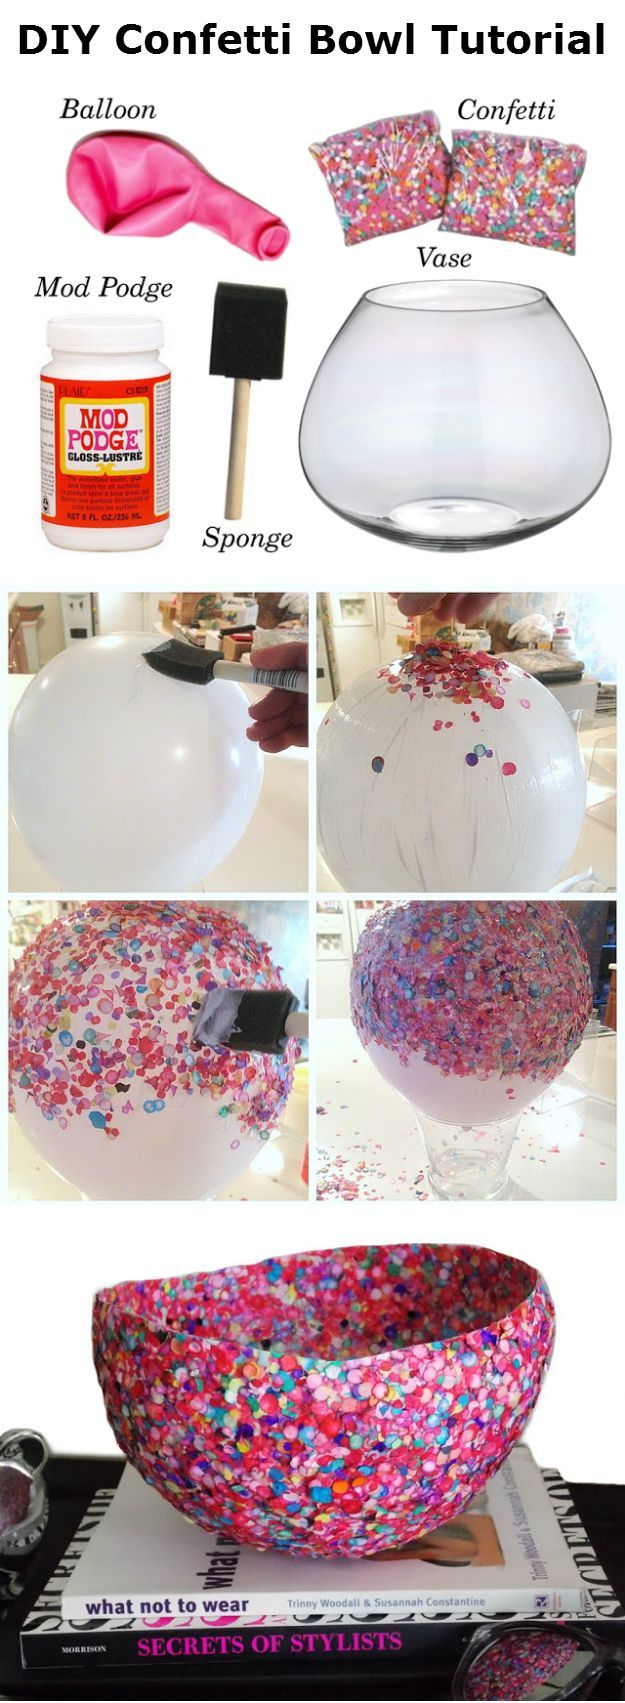 Great Diy Decorative Home Ideas İn Budget You Can Do 1